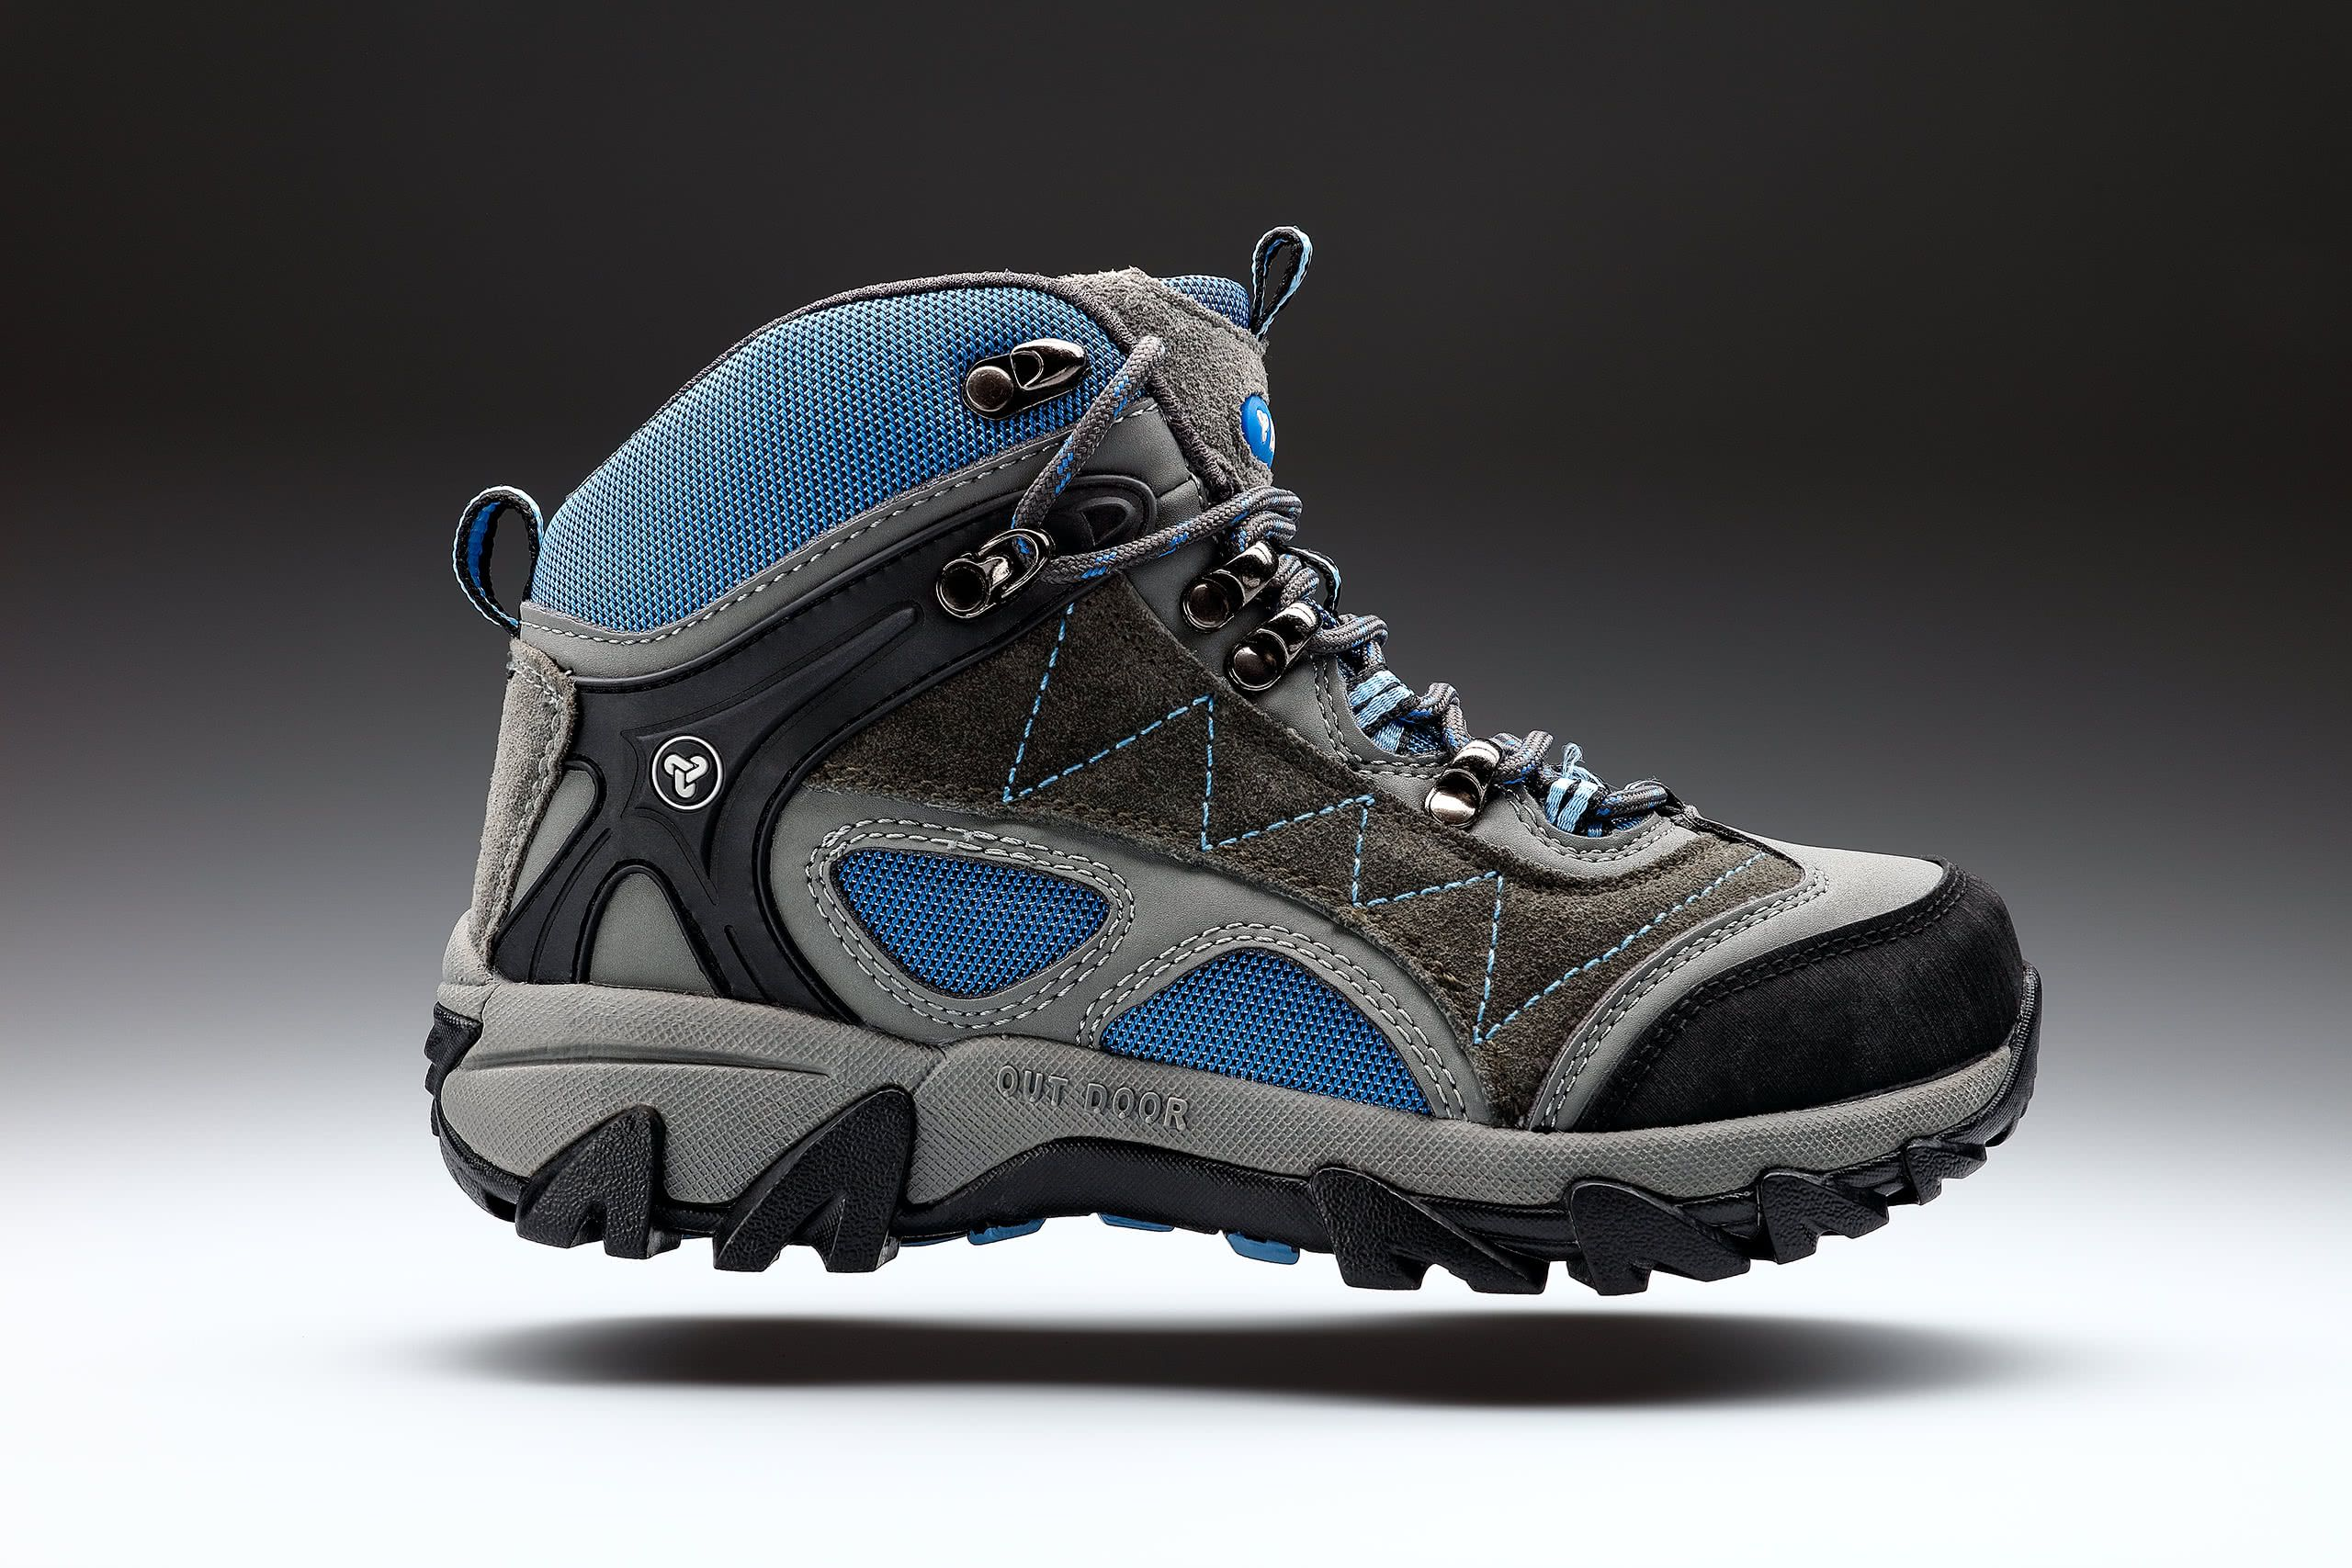 hiking-boots-product-photography